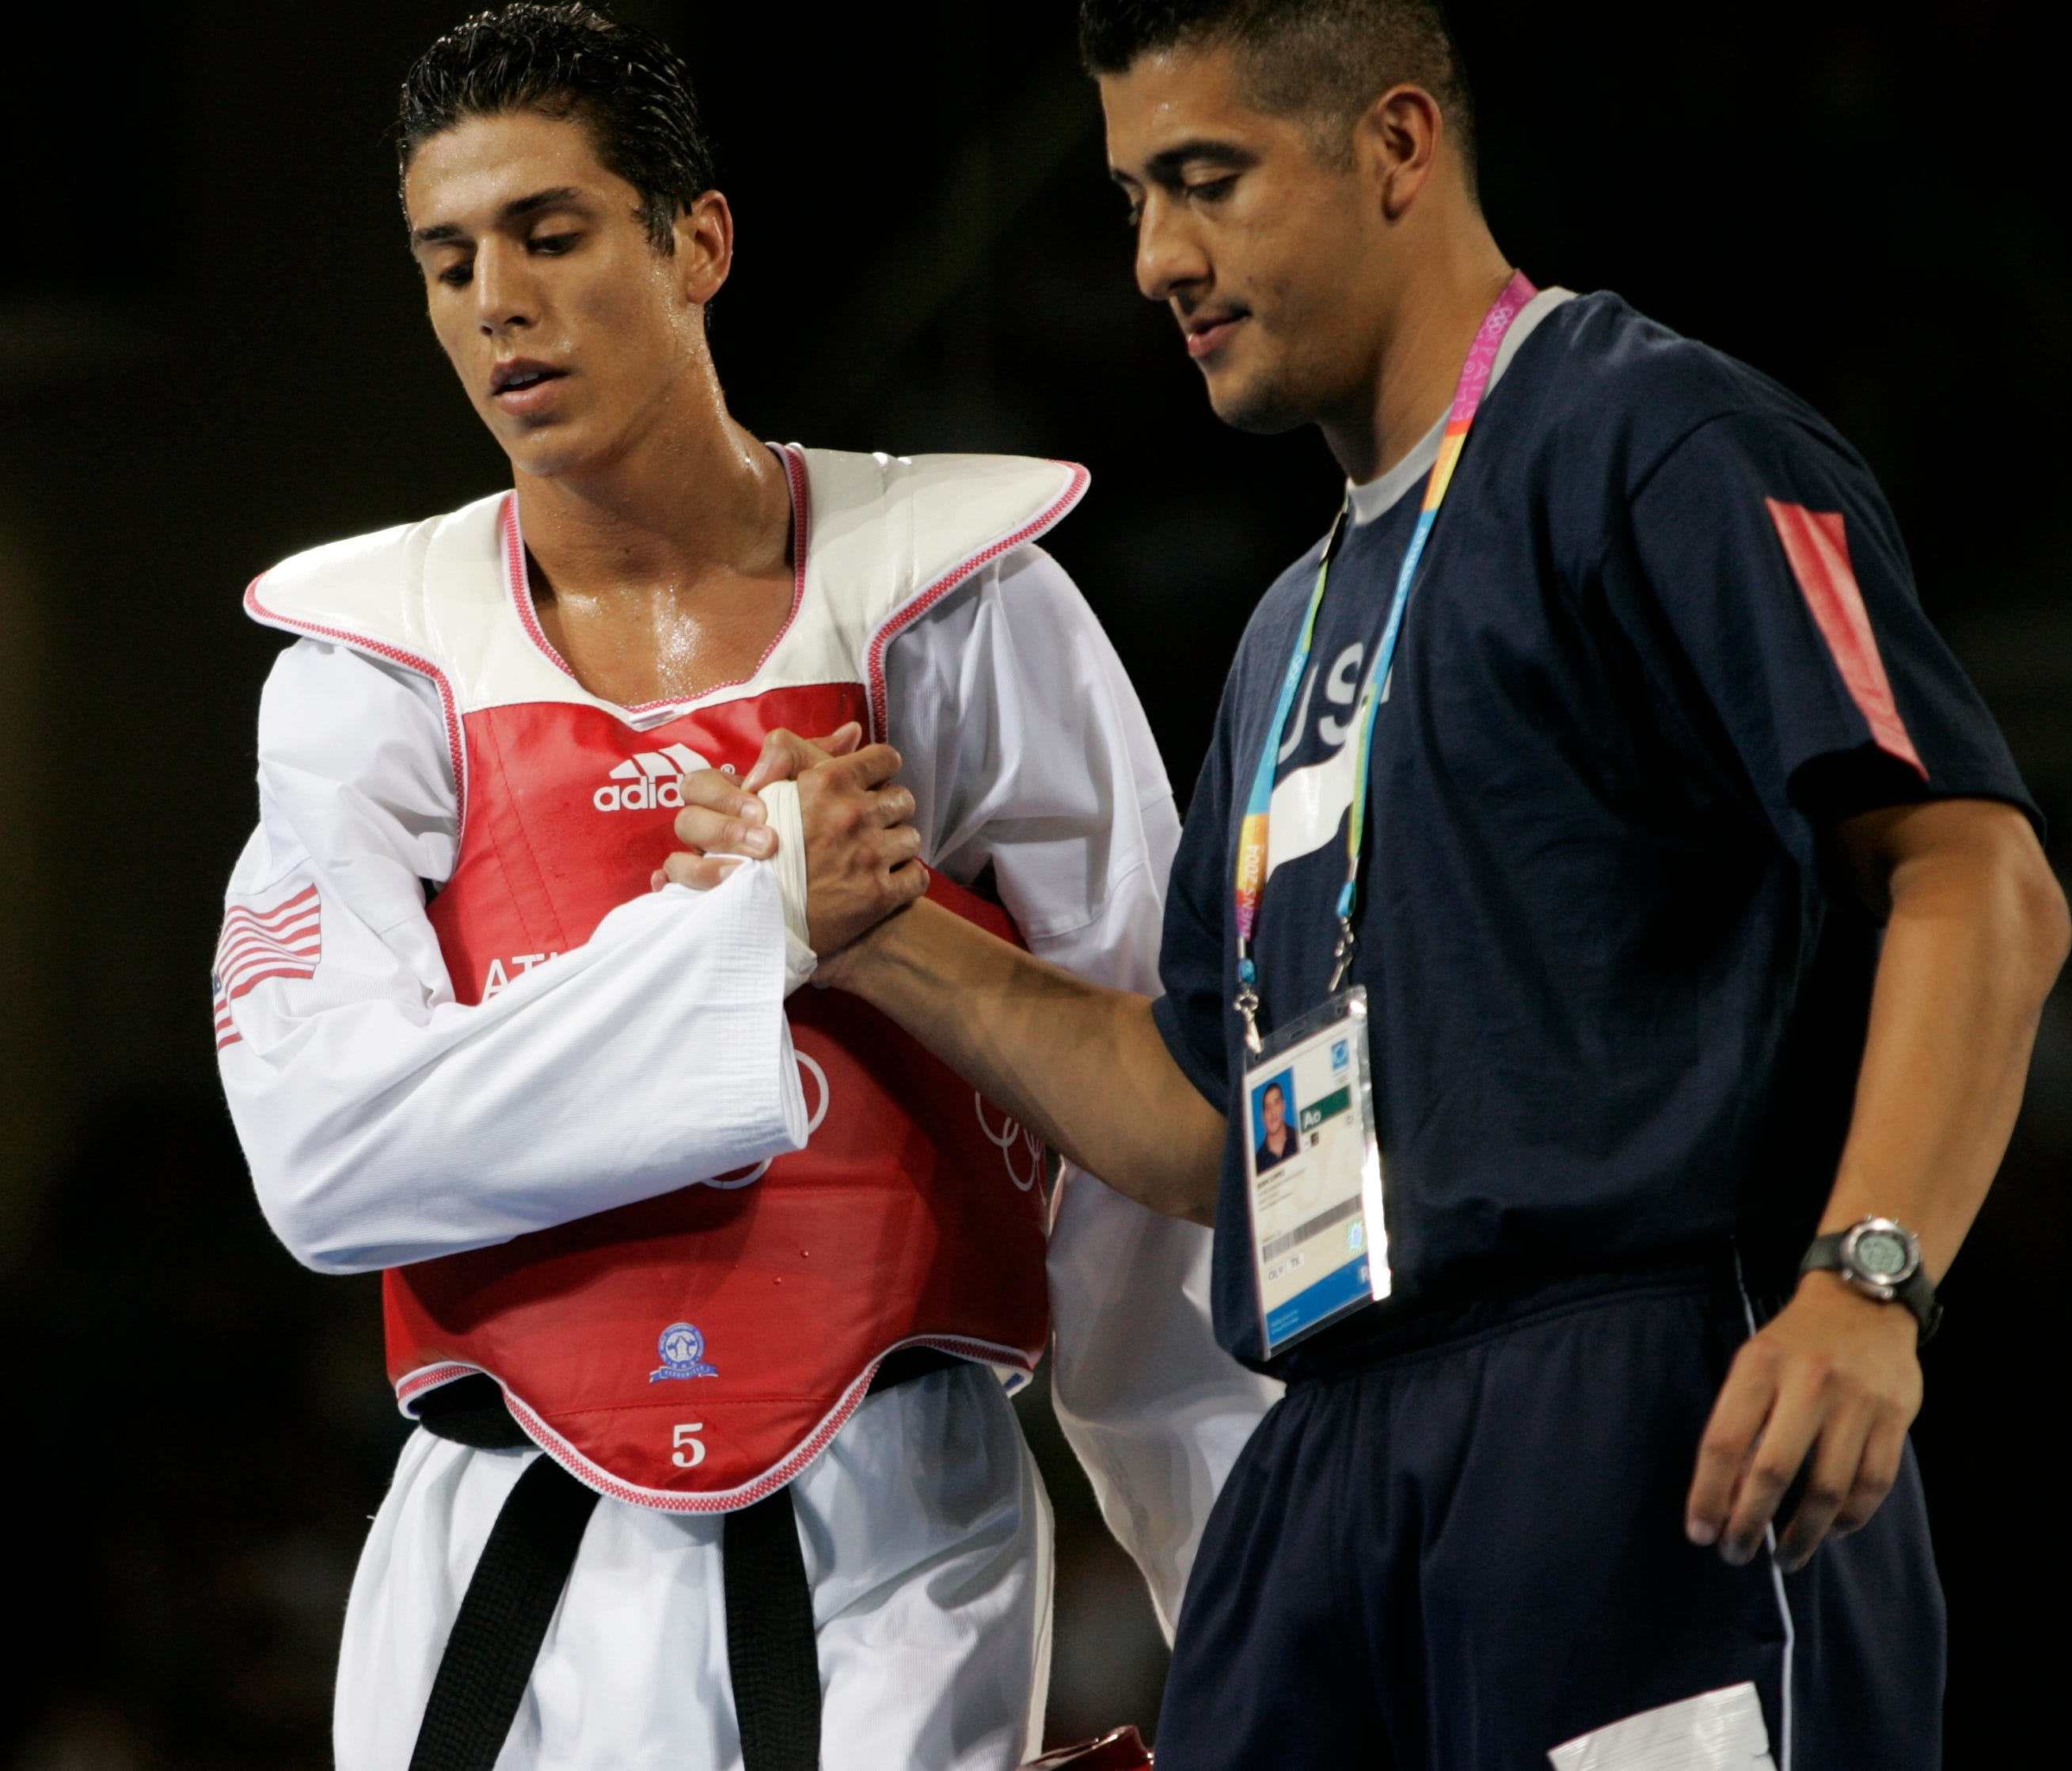 Steven Lopez, left, and his brother, Jean, have been suspended by USA Taekwondo